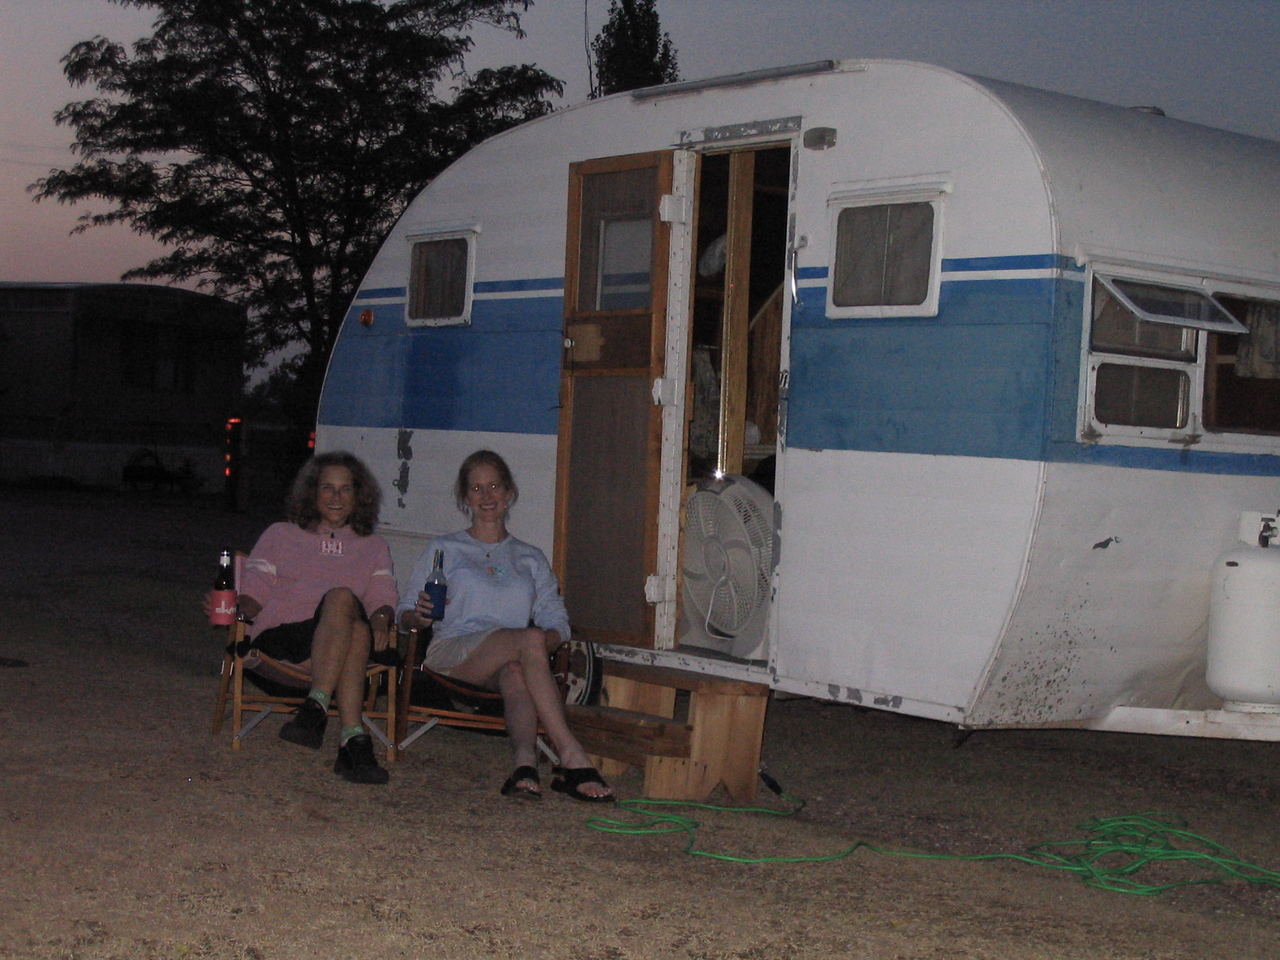 SKERT and Marylee first night caming in the Mallard